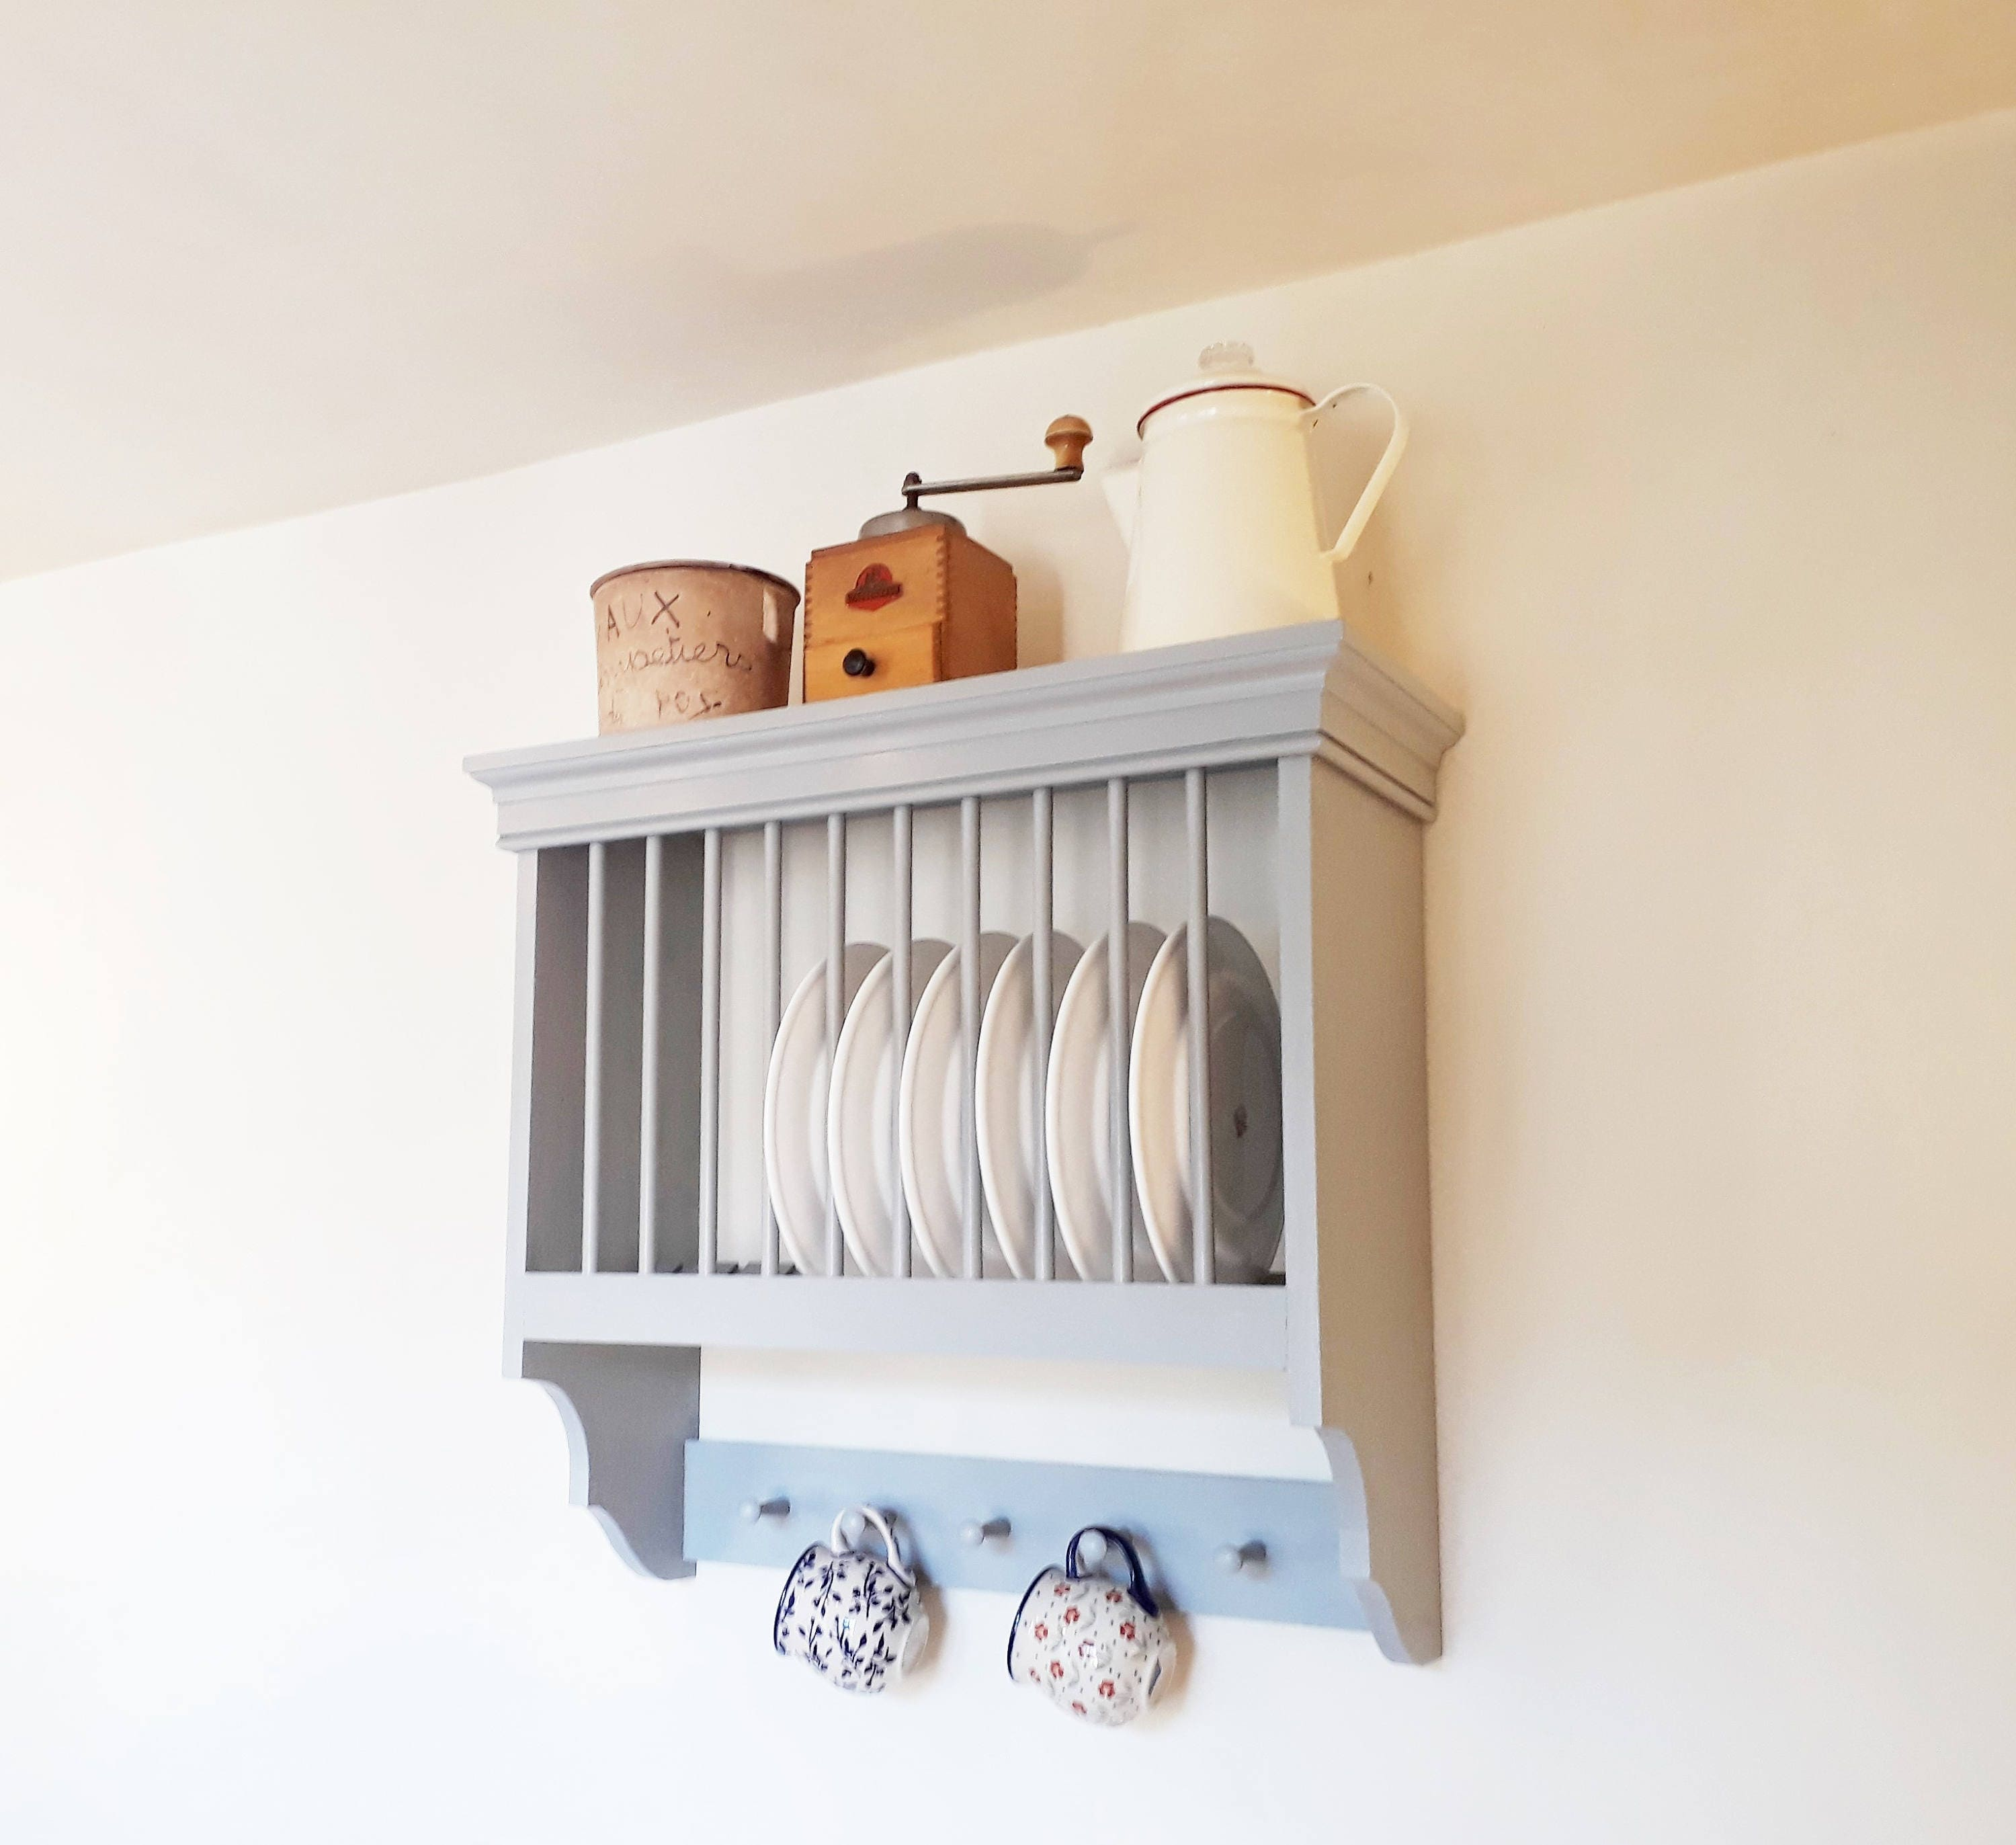 Modern Kitchen Plates: Kitchen Plate Rack Handmade Modern Rustic Kitchen Shelving